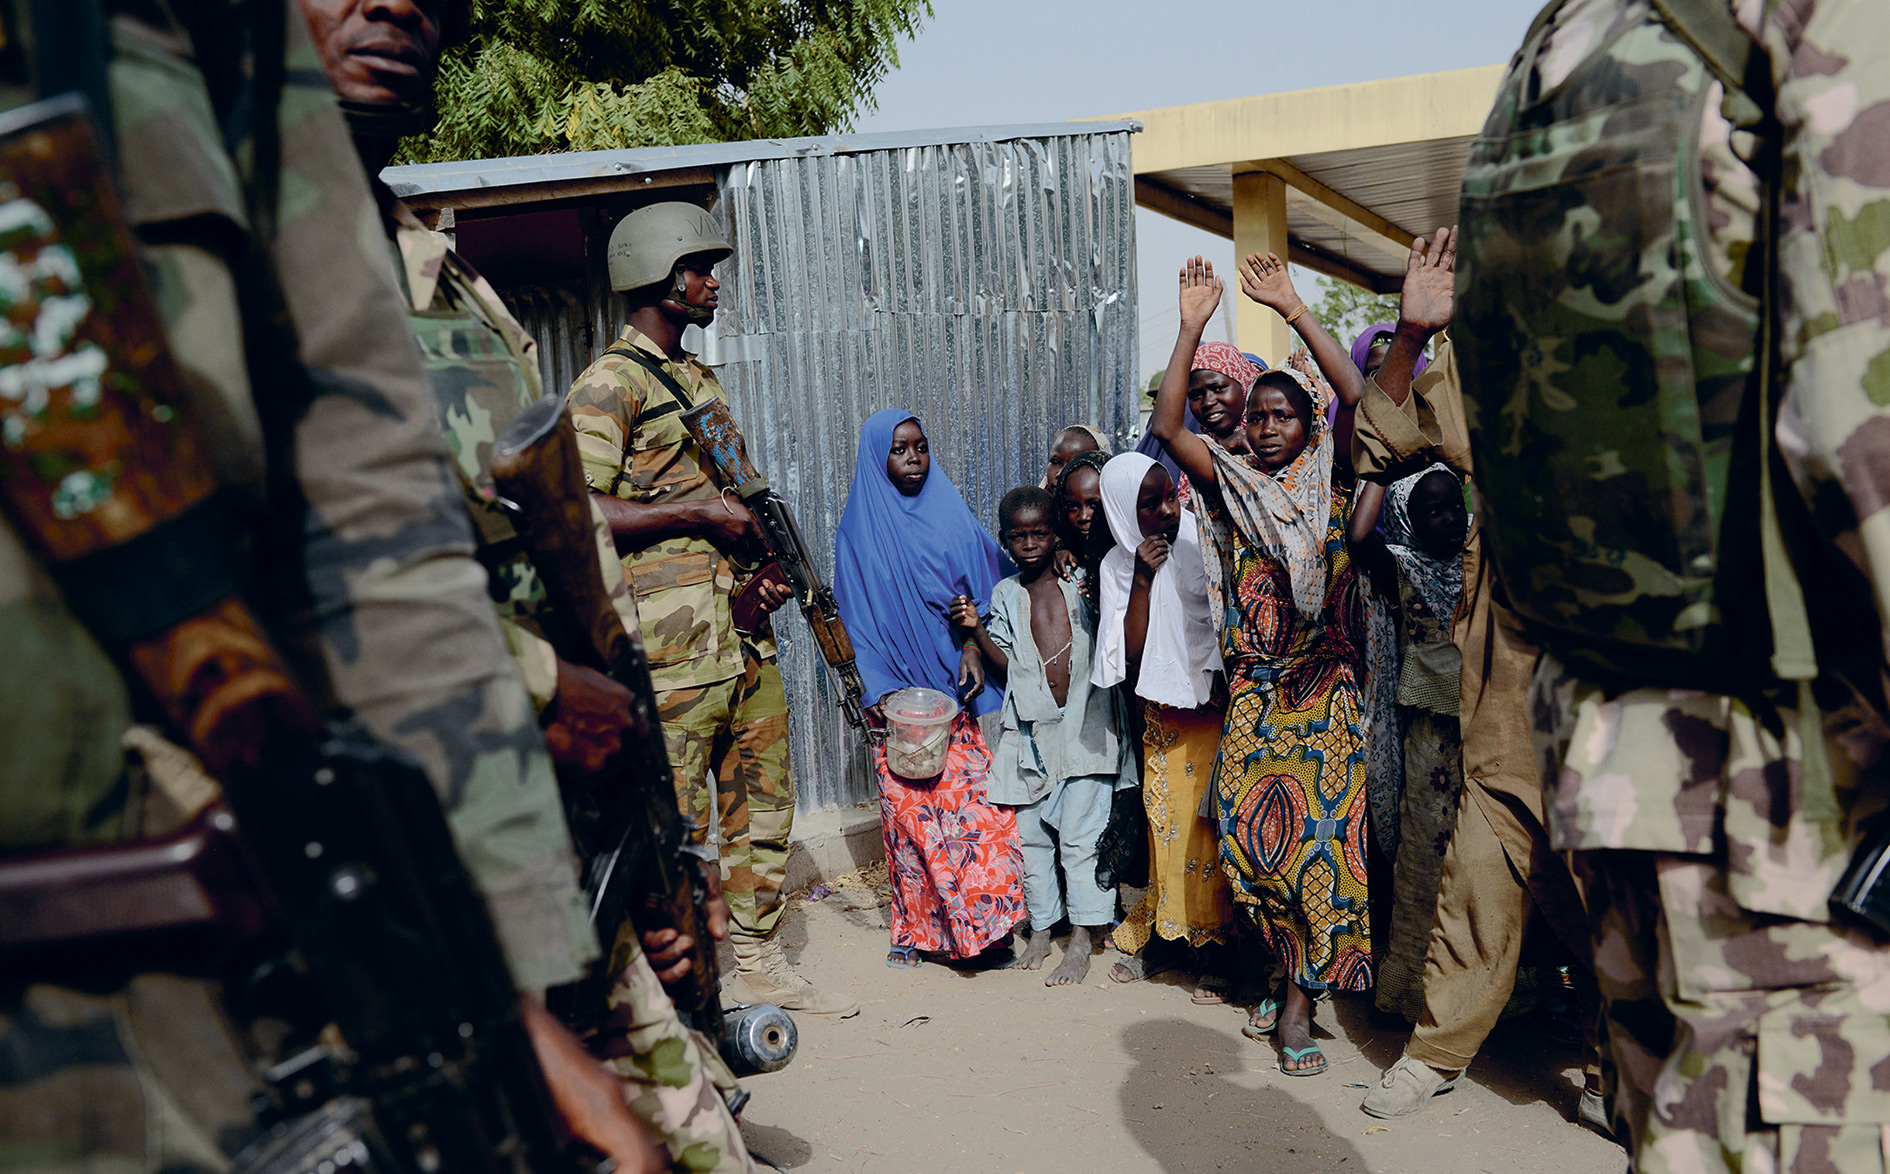 Free at last? The Nigerian military is greeted by people in Monguno town after driving out Boko Haram in 2015.